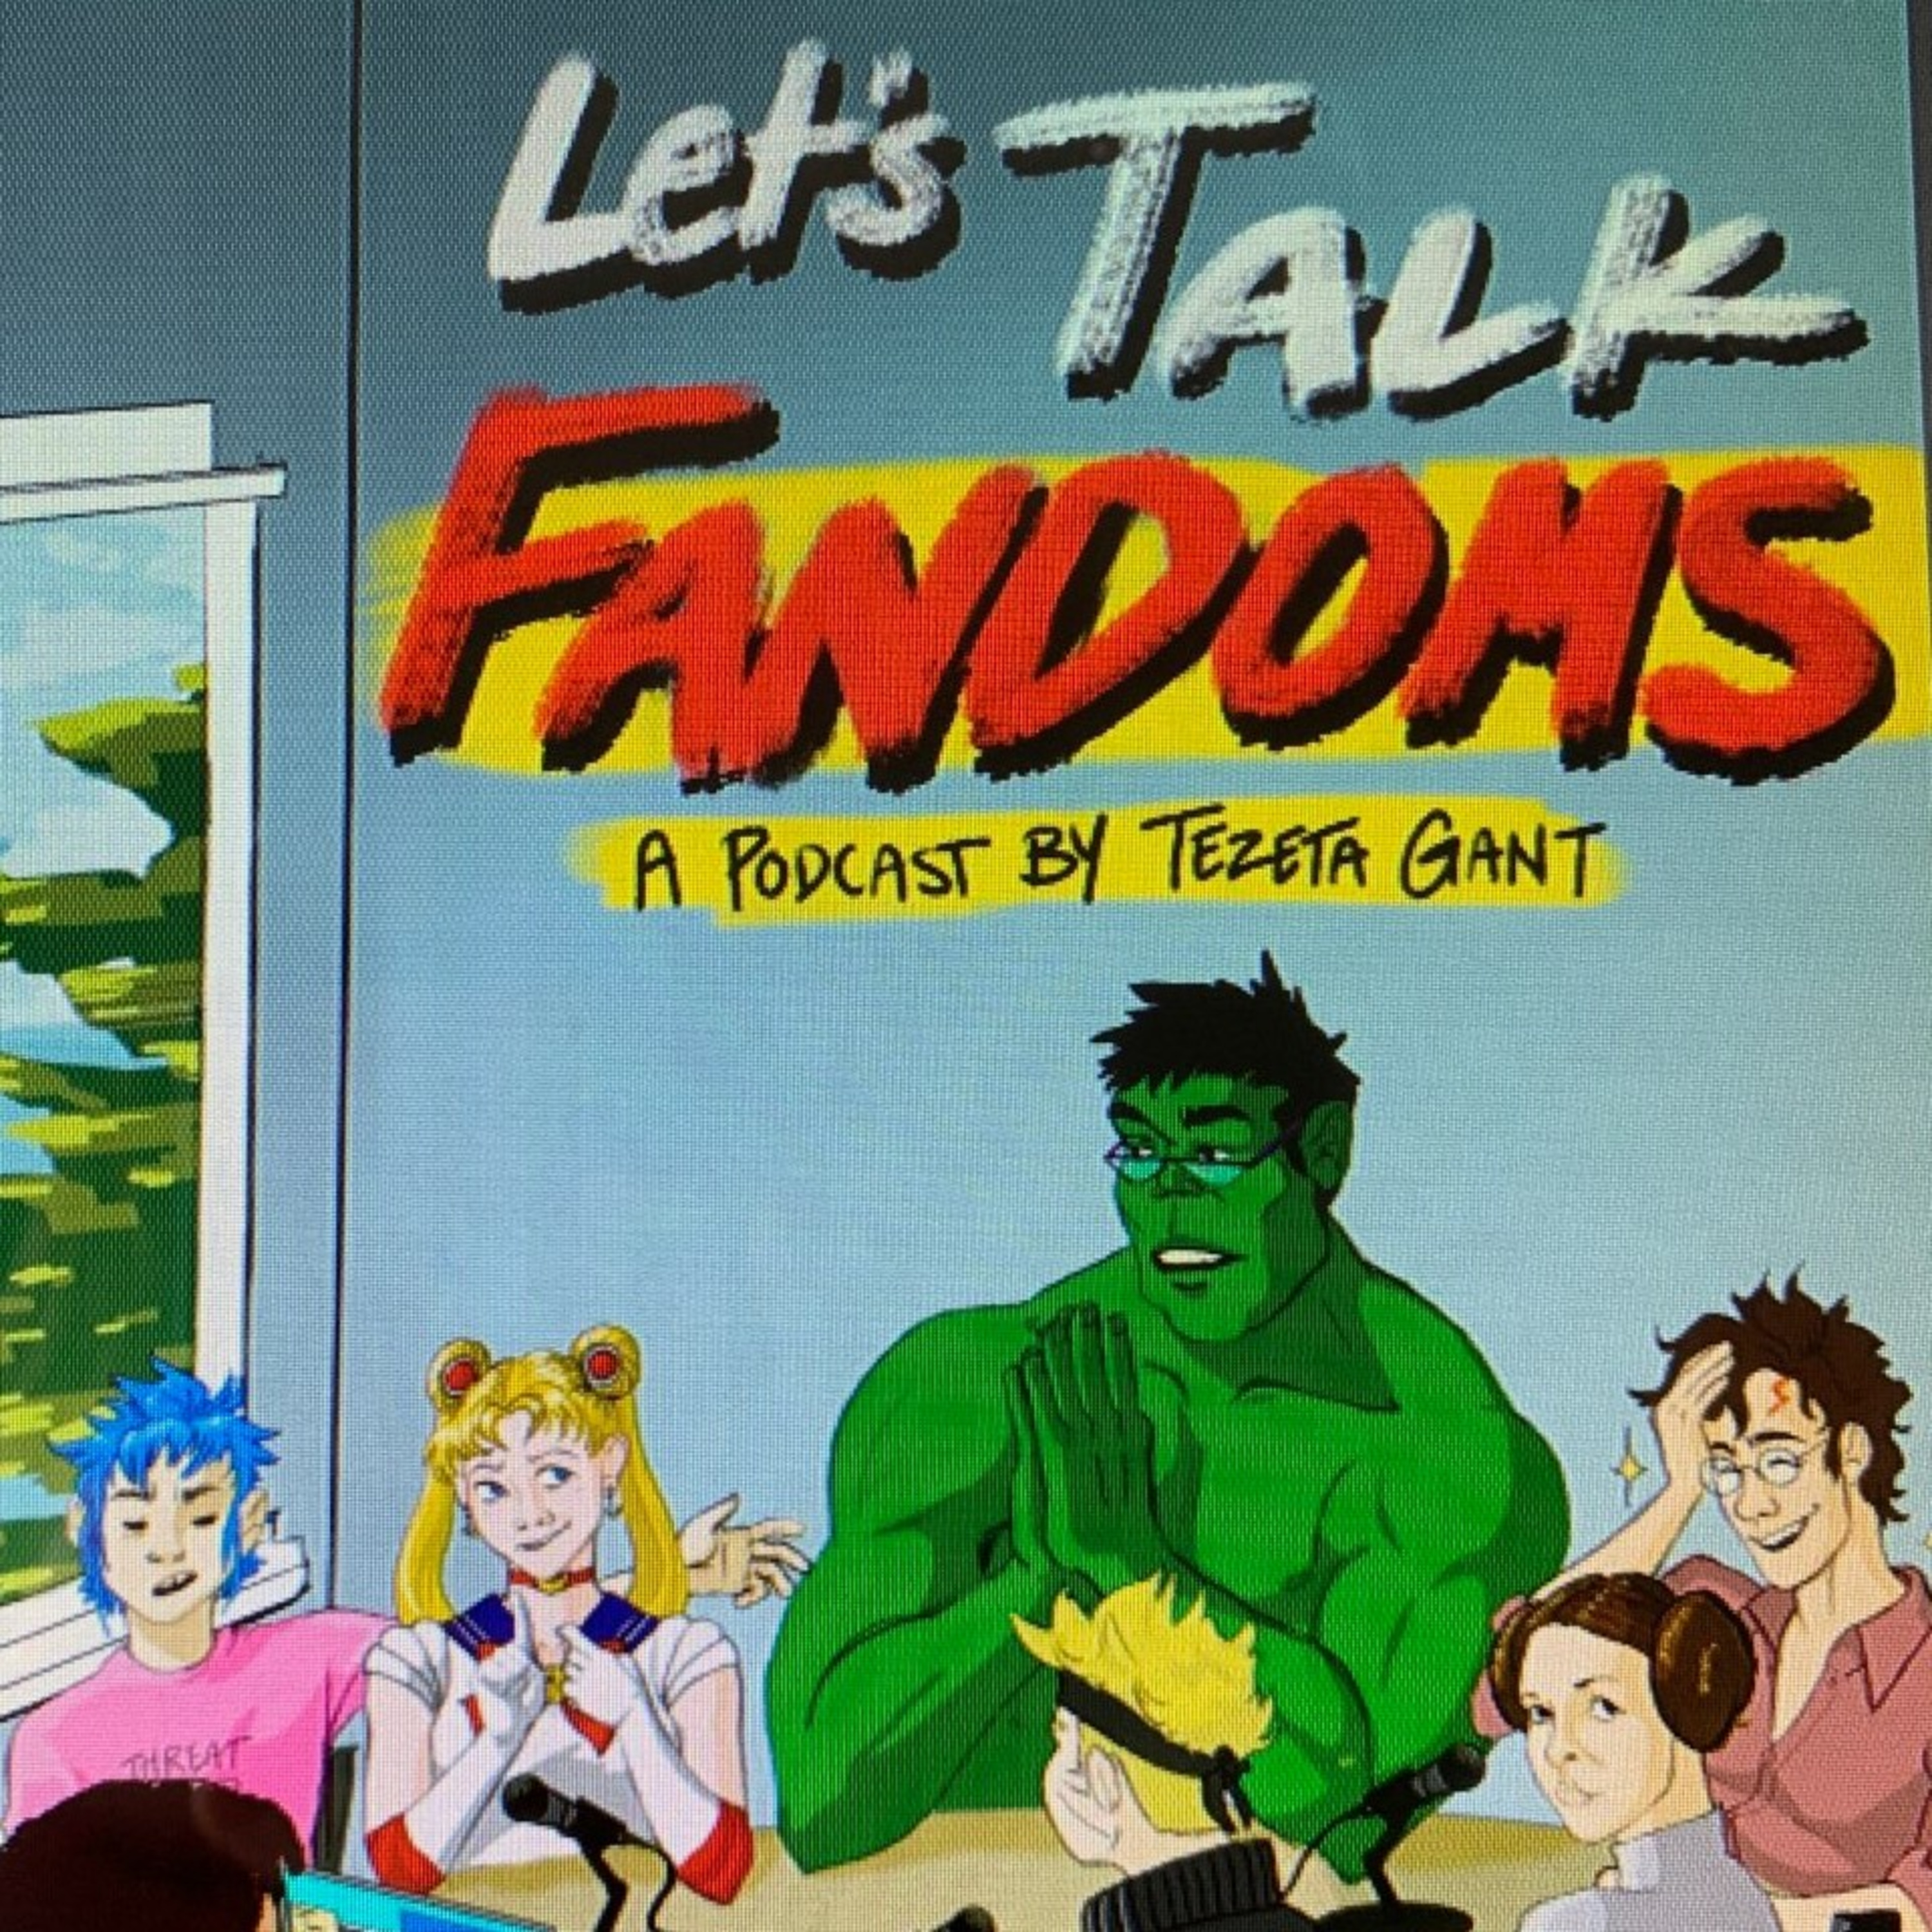 Trailer for Let's Talk Fandoms, where we talk about all things Fandoms